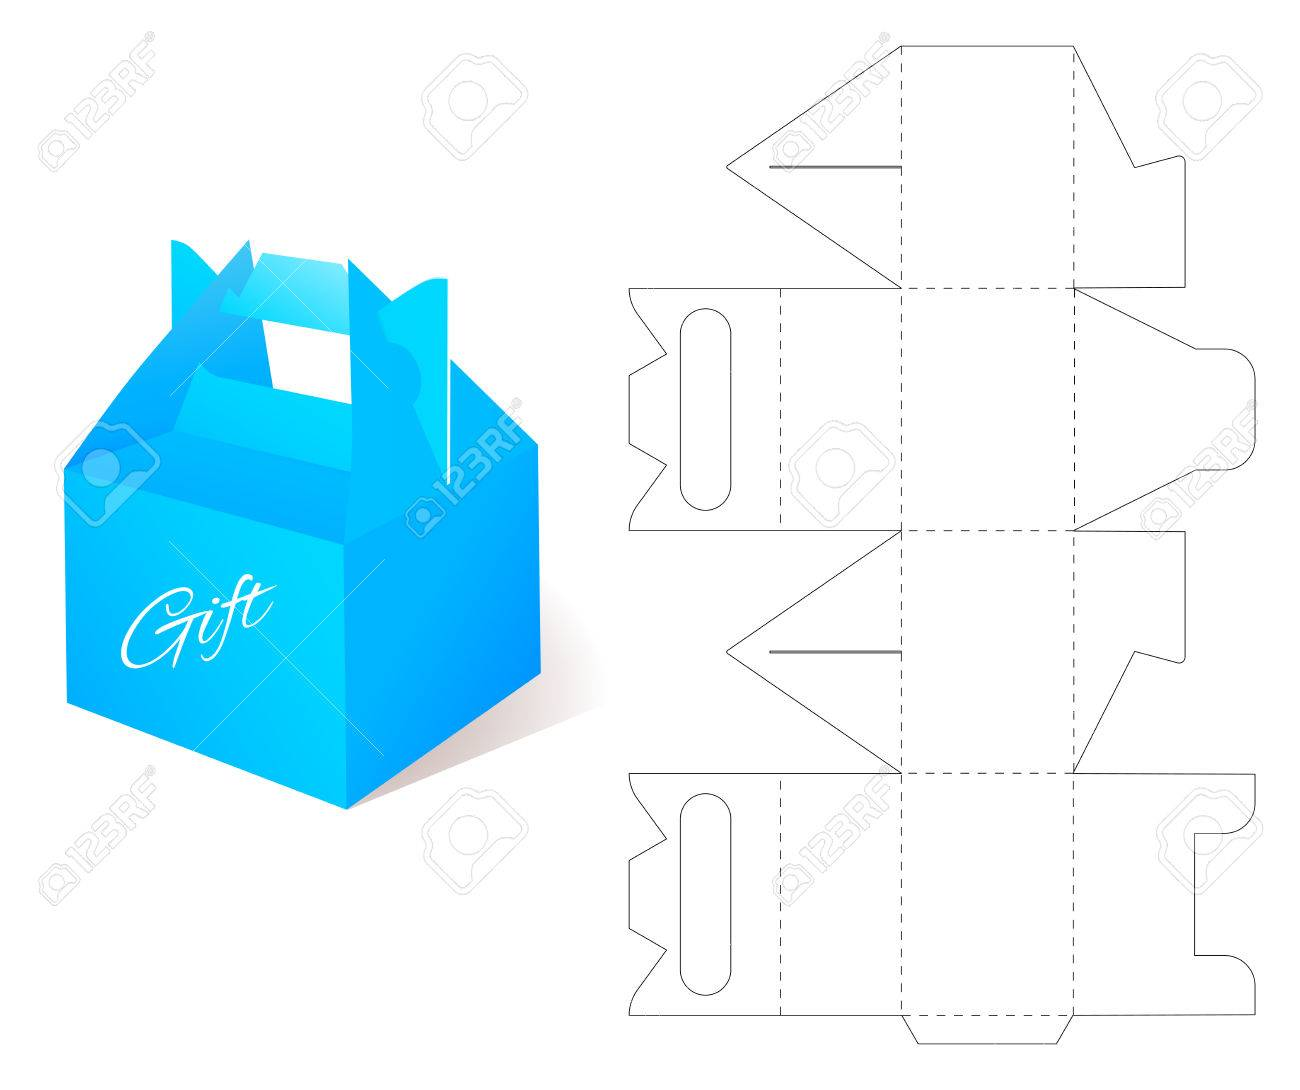 box with die cut template packing box for gift or other products